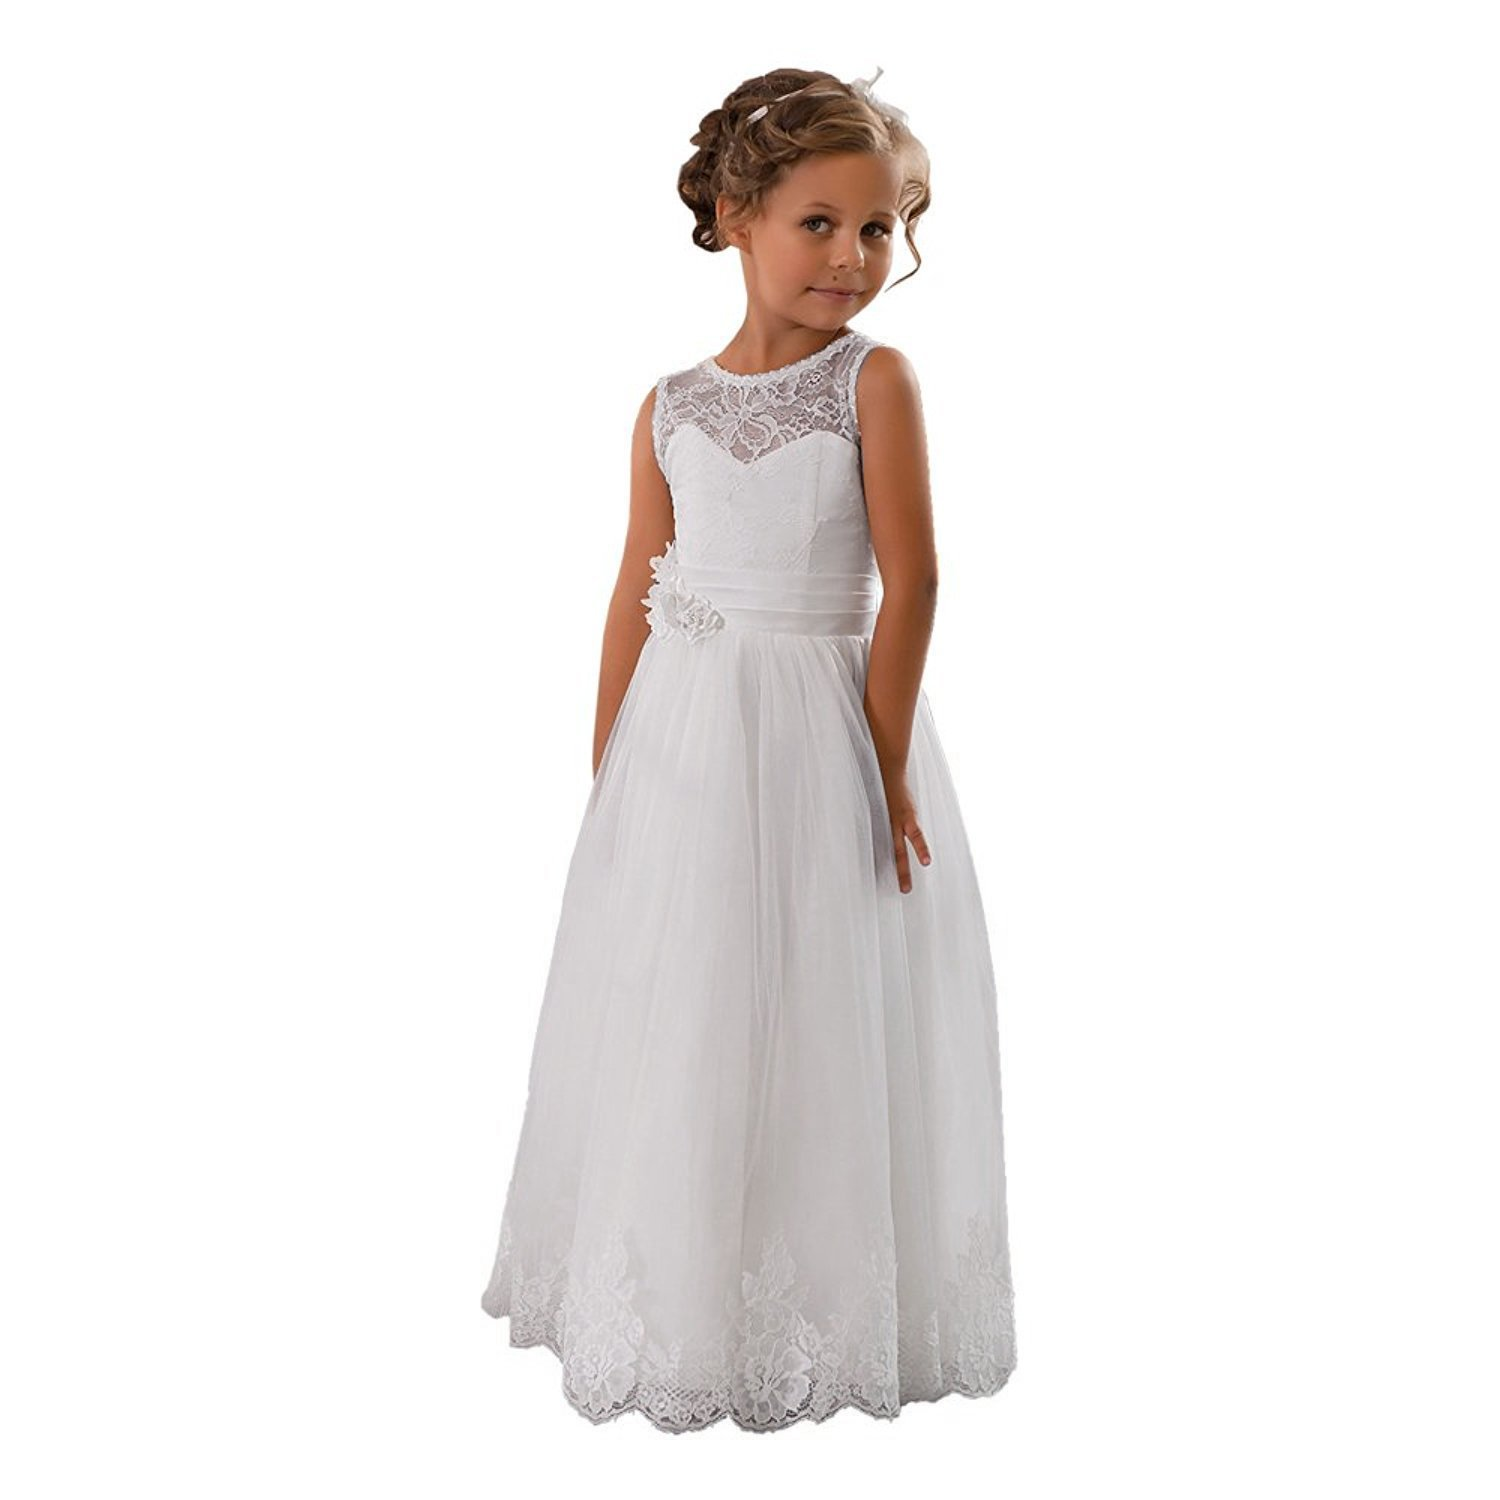 Carat Lace Embellished A-Line Sleeveless Girls Wedding Party Dresses White Size 4